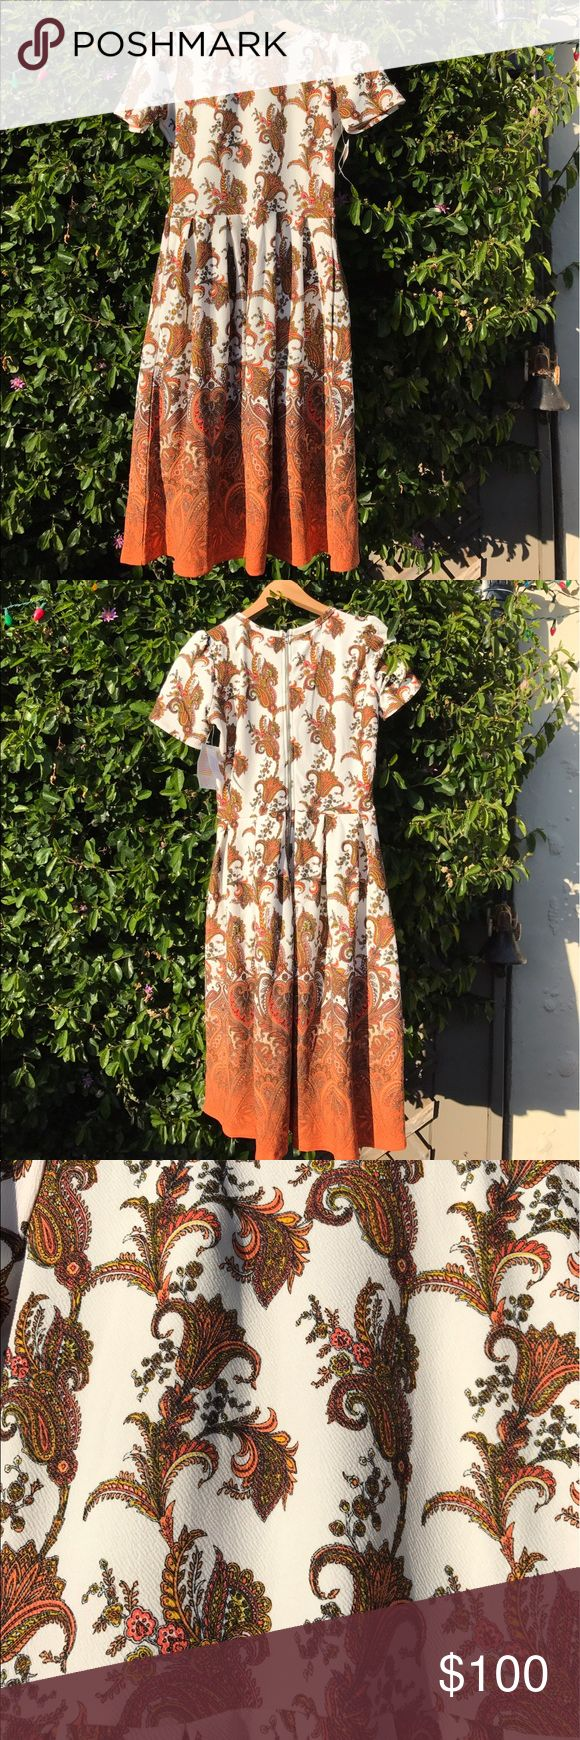 LuLaRoe Amelia Ombre Dipped Dress BNWT HTF LuLaRoe Amelia Dress. Size Medium. BNWT. Hard to Find Ombre Dipped Print! This dress can be worn throughout the seasons. Pair it with boots, Birkenstocks, heels, or converse. Amelia is versatile and stretchy! Wear with the zipper in the back or the front!! Add a belt for a different look. This dress has POCKETS!! Who doesn't love pockets?! Smoke free home. Is this your Unicorn, Arrow, Elephant, Disney Roses, Paisley, or Owl Print?  Quick shipping…